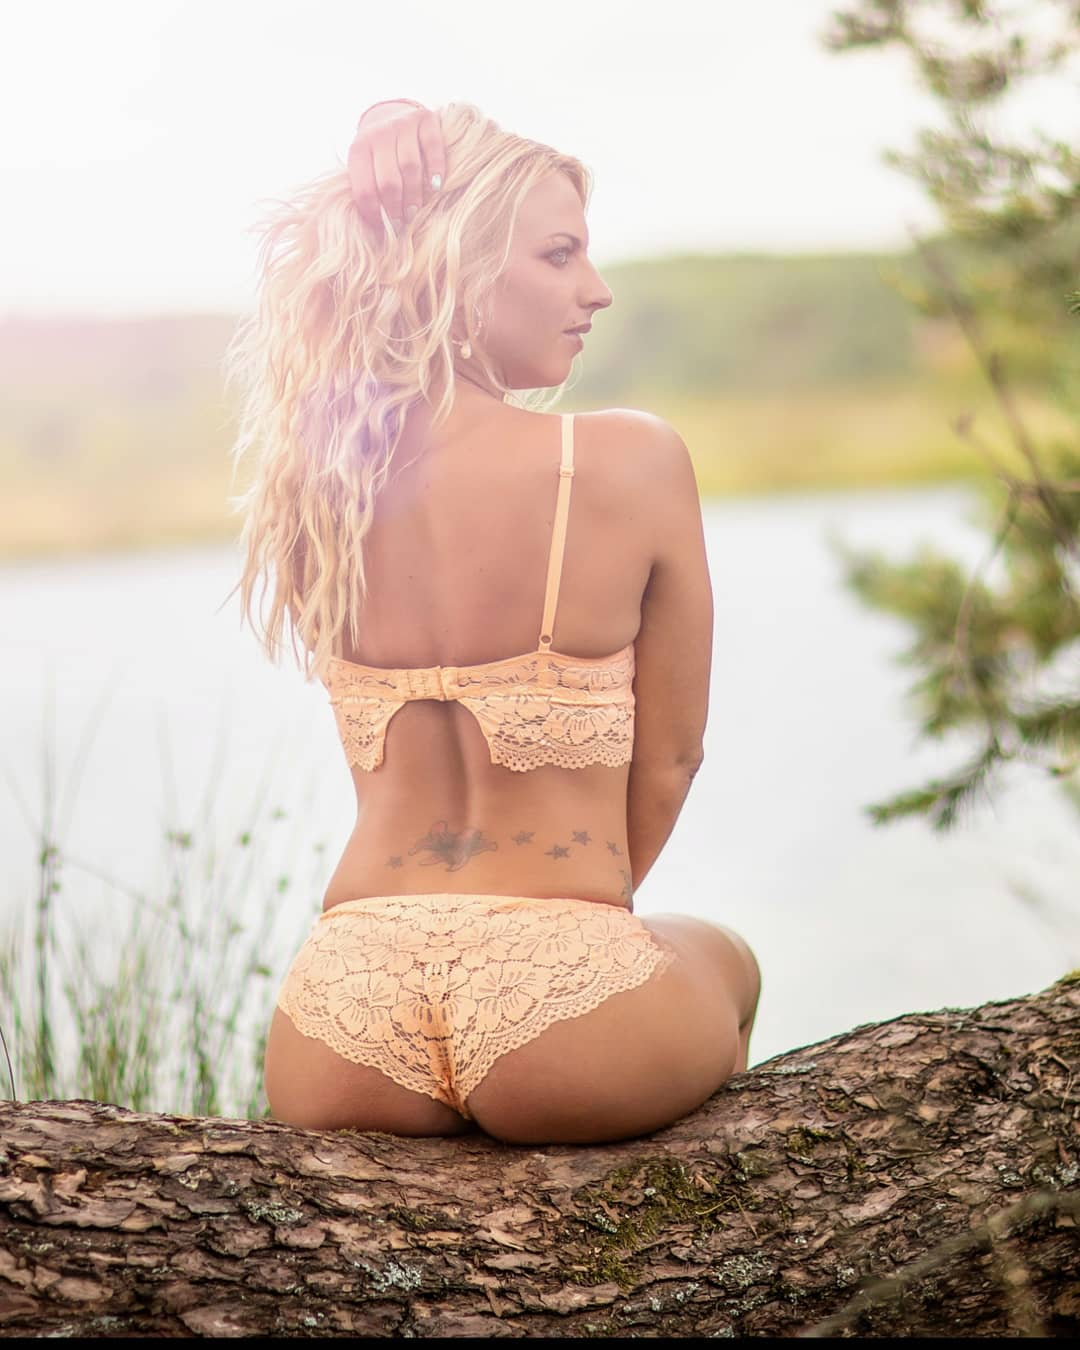 Beautiful Dutch model Willeke Bartels wearing peach lingerie sitting on a log looking over her shoulder showing her sexy tattooed bare back